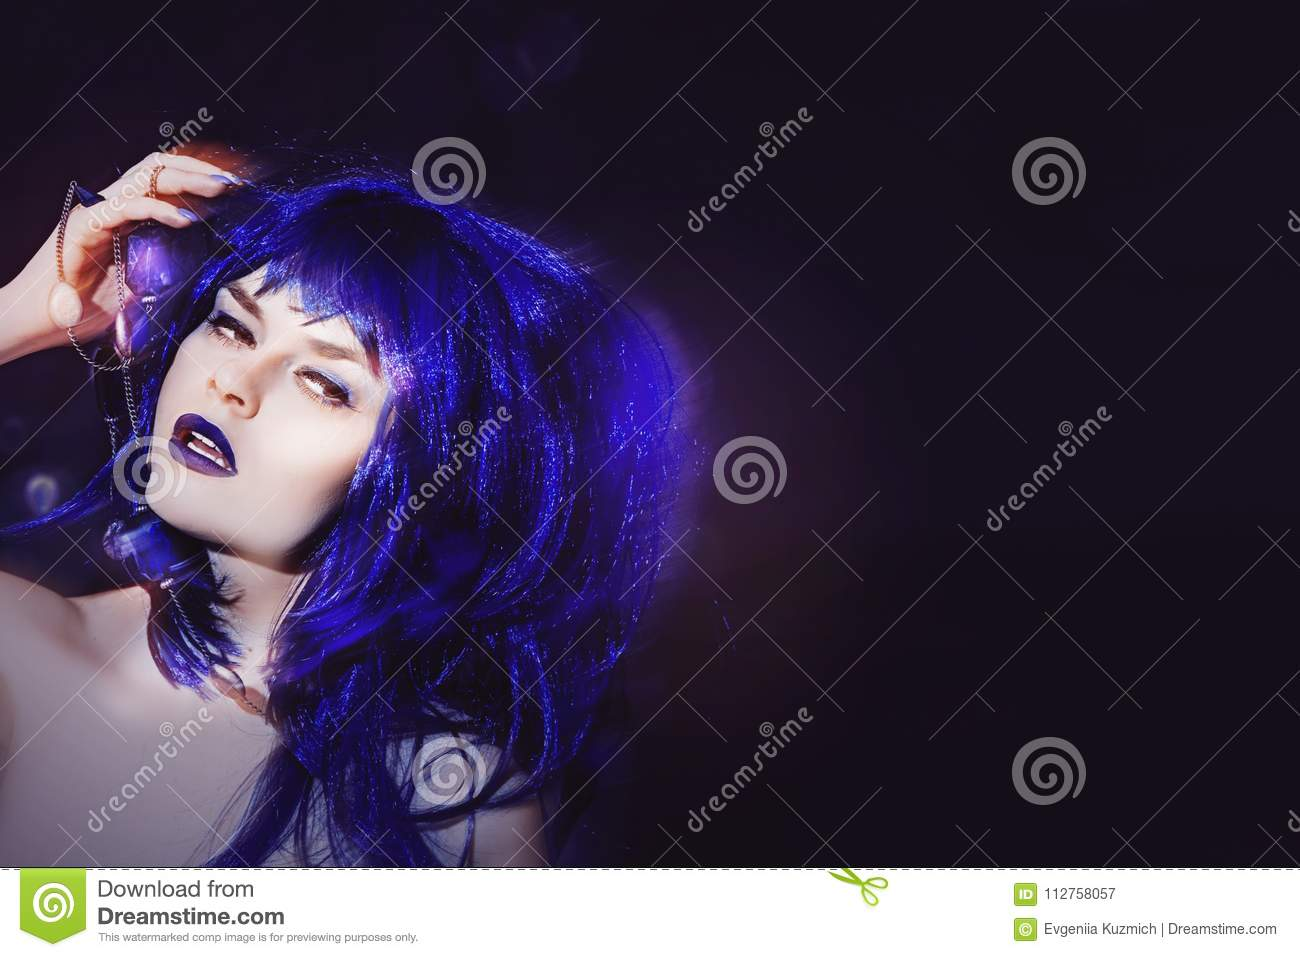 Female beautiful young model with hair the color purple, makeup